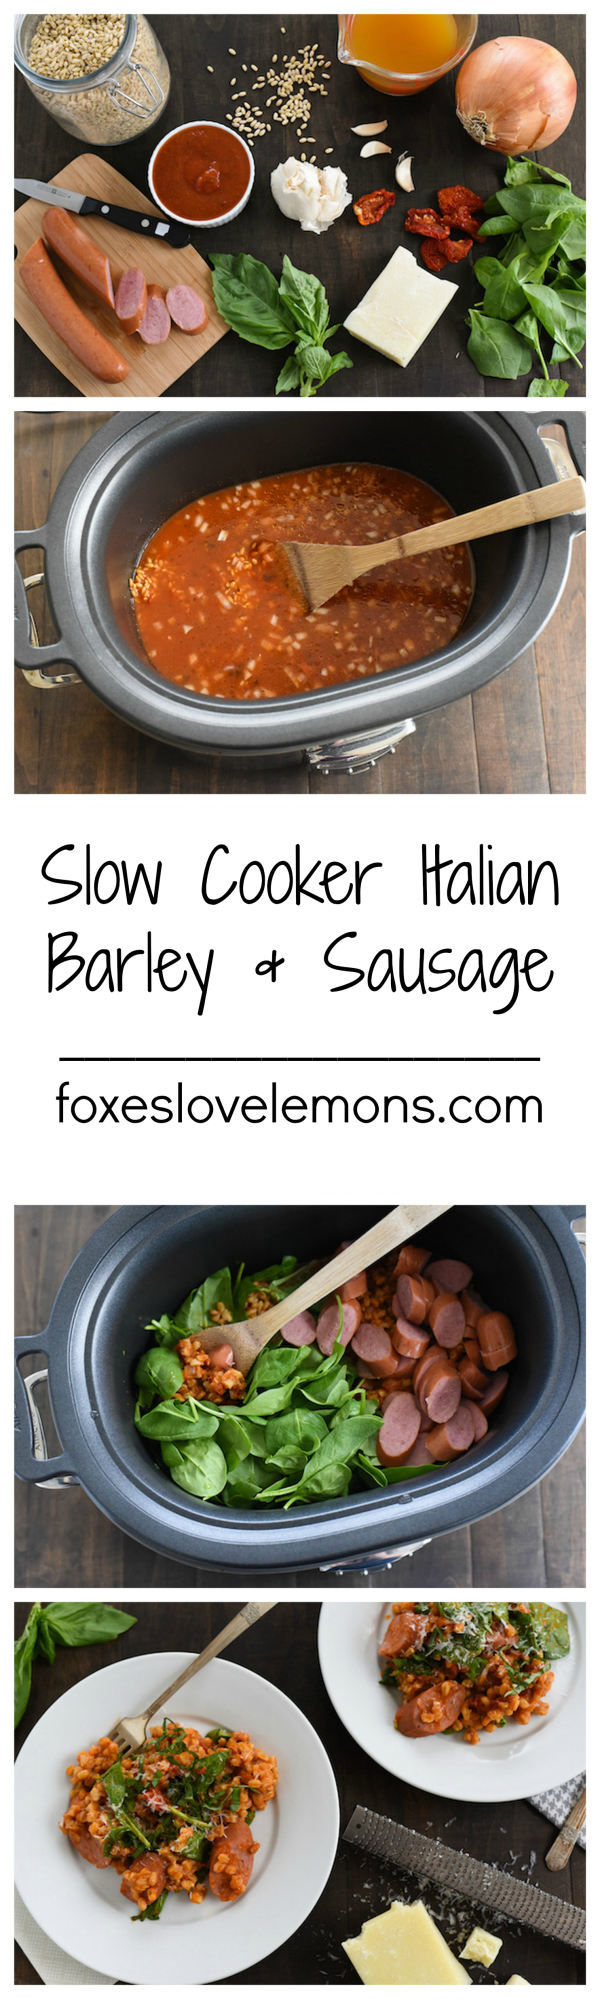 Slow Cooker Italian Barley & Sausage - A healthy, no-fuss meal made with whole grains, lean turkey sausage and spinach! | foxeslovelemons.com